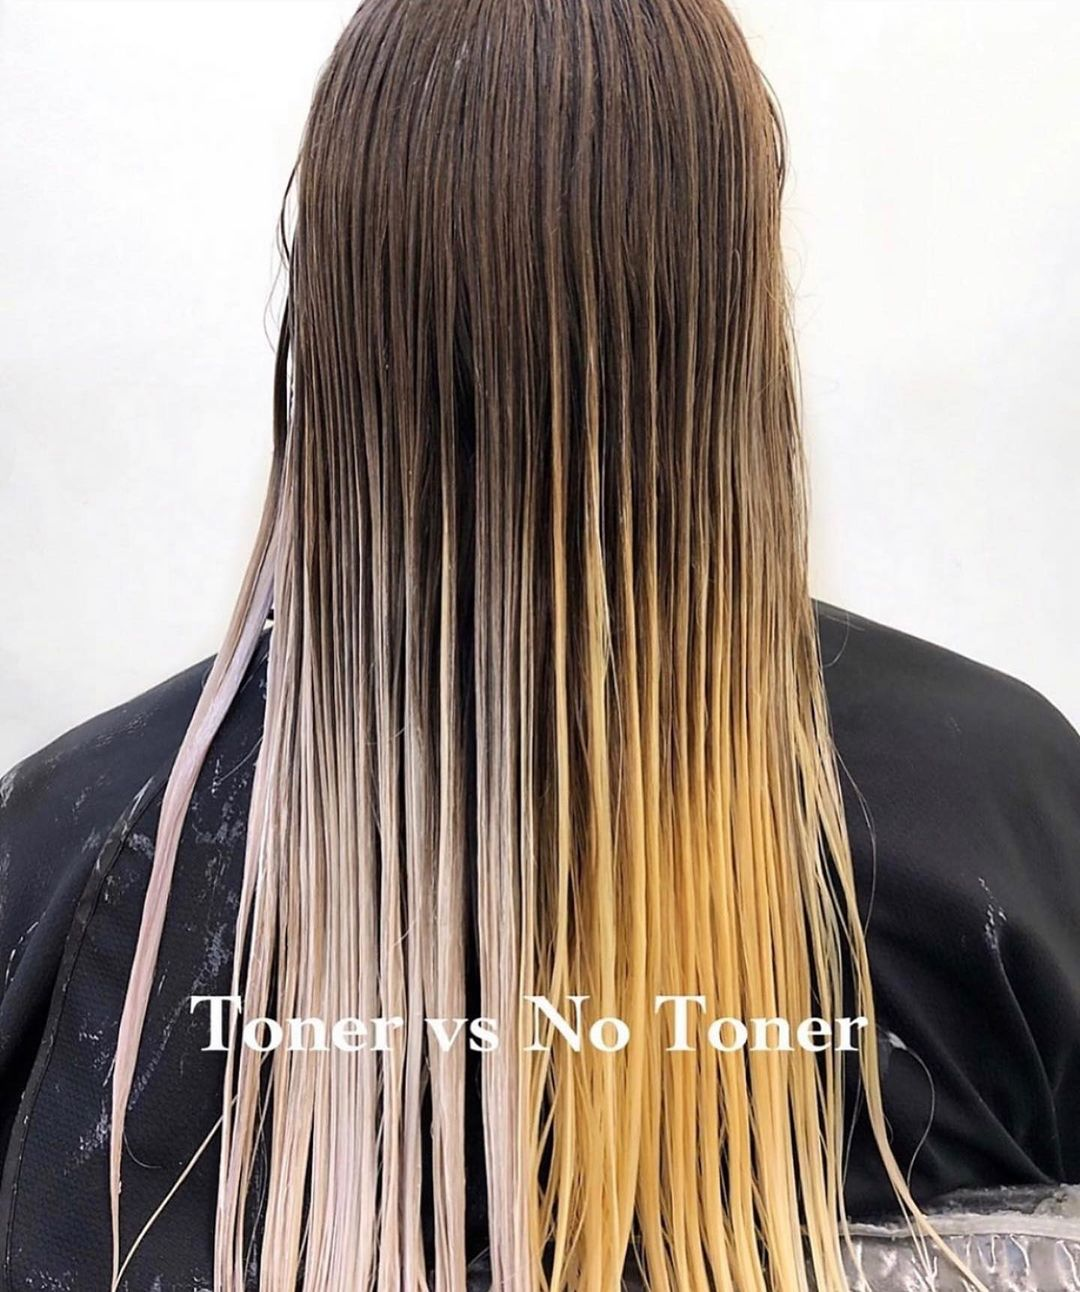 Orange Hair to Blonde Transition with Toning